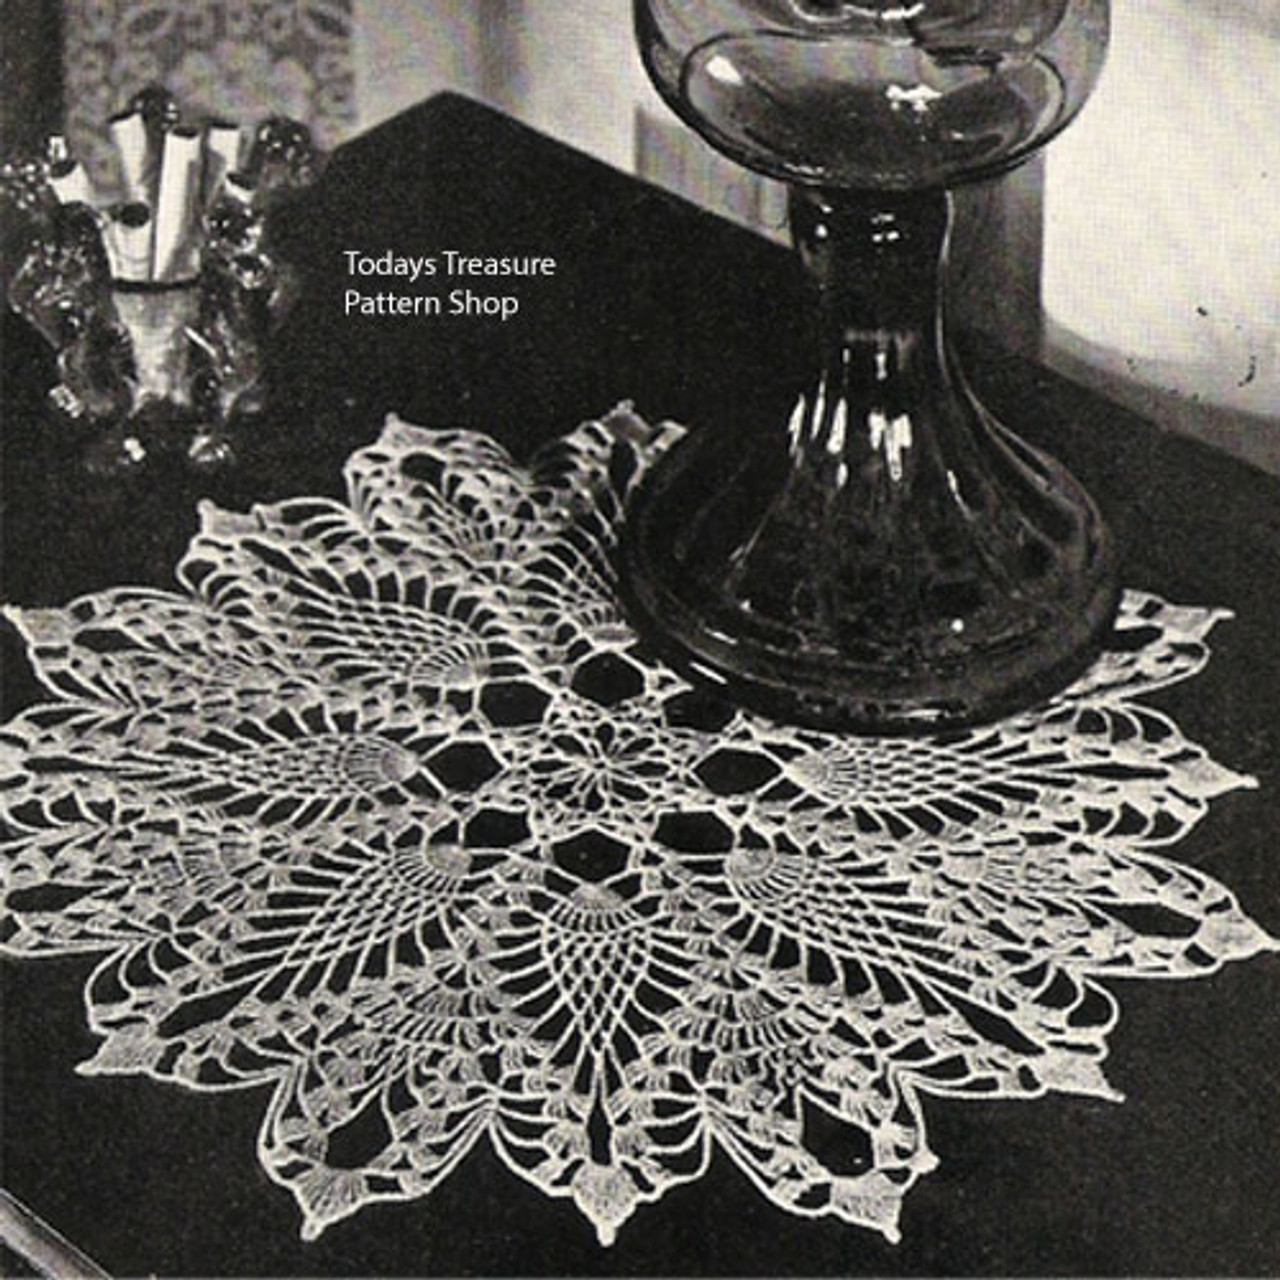 Pineapple Doily Pattern from Spool Cotton